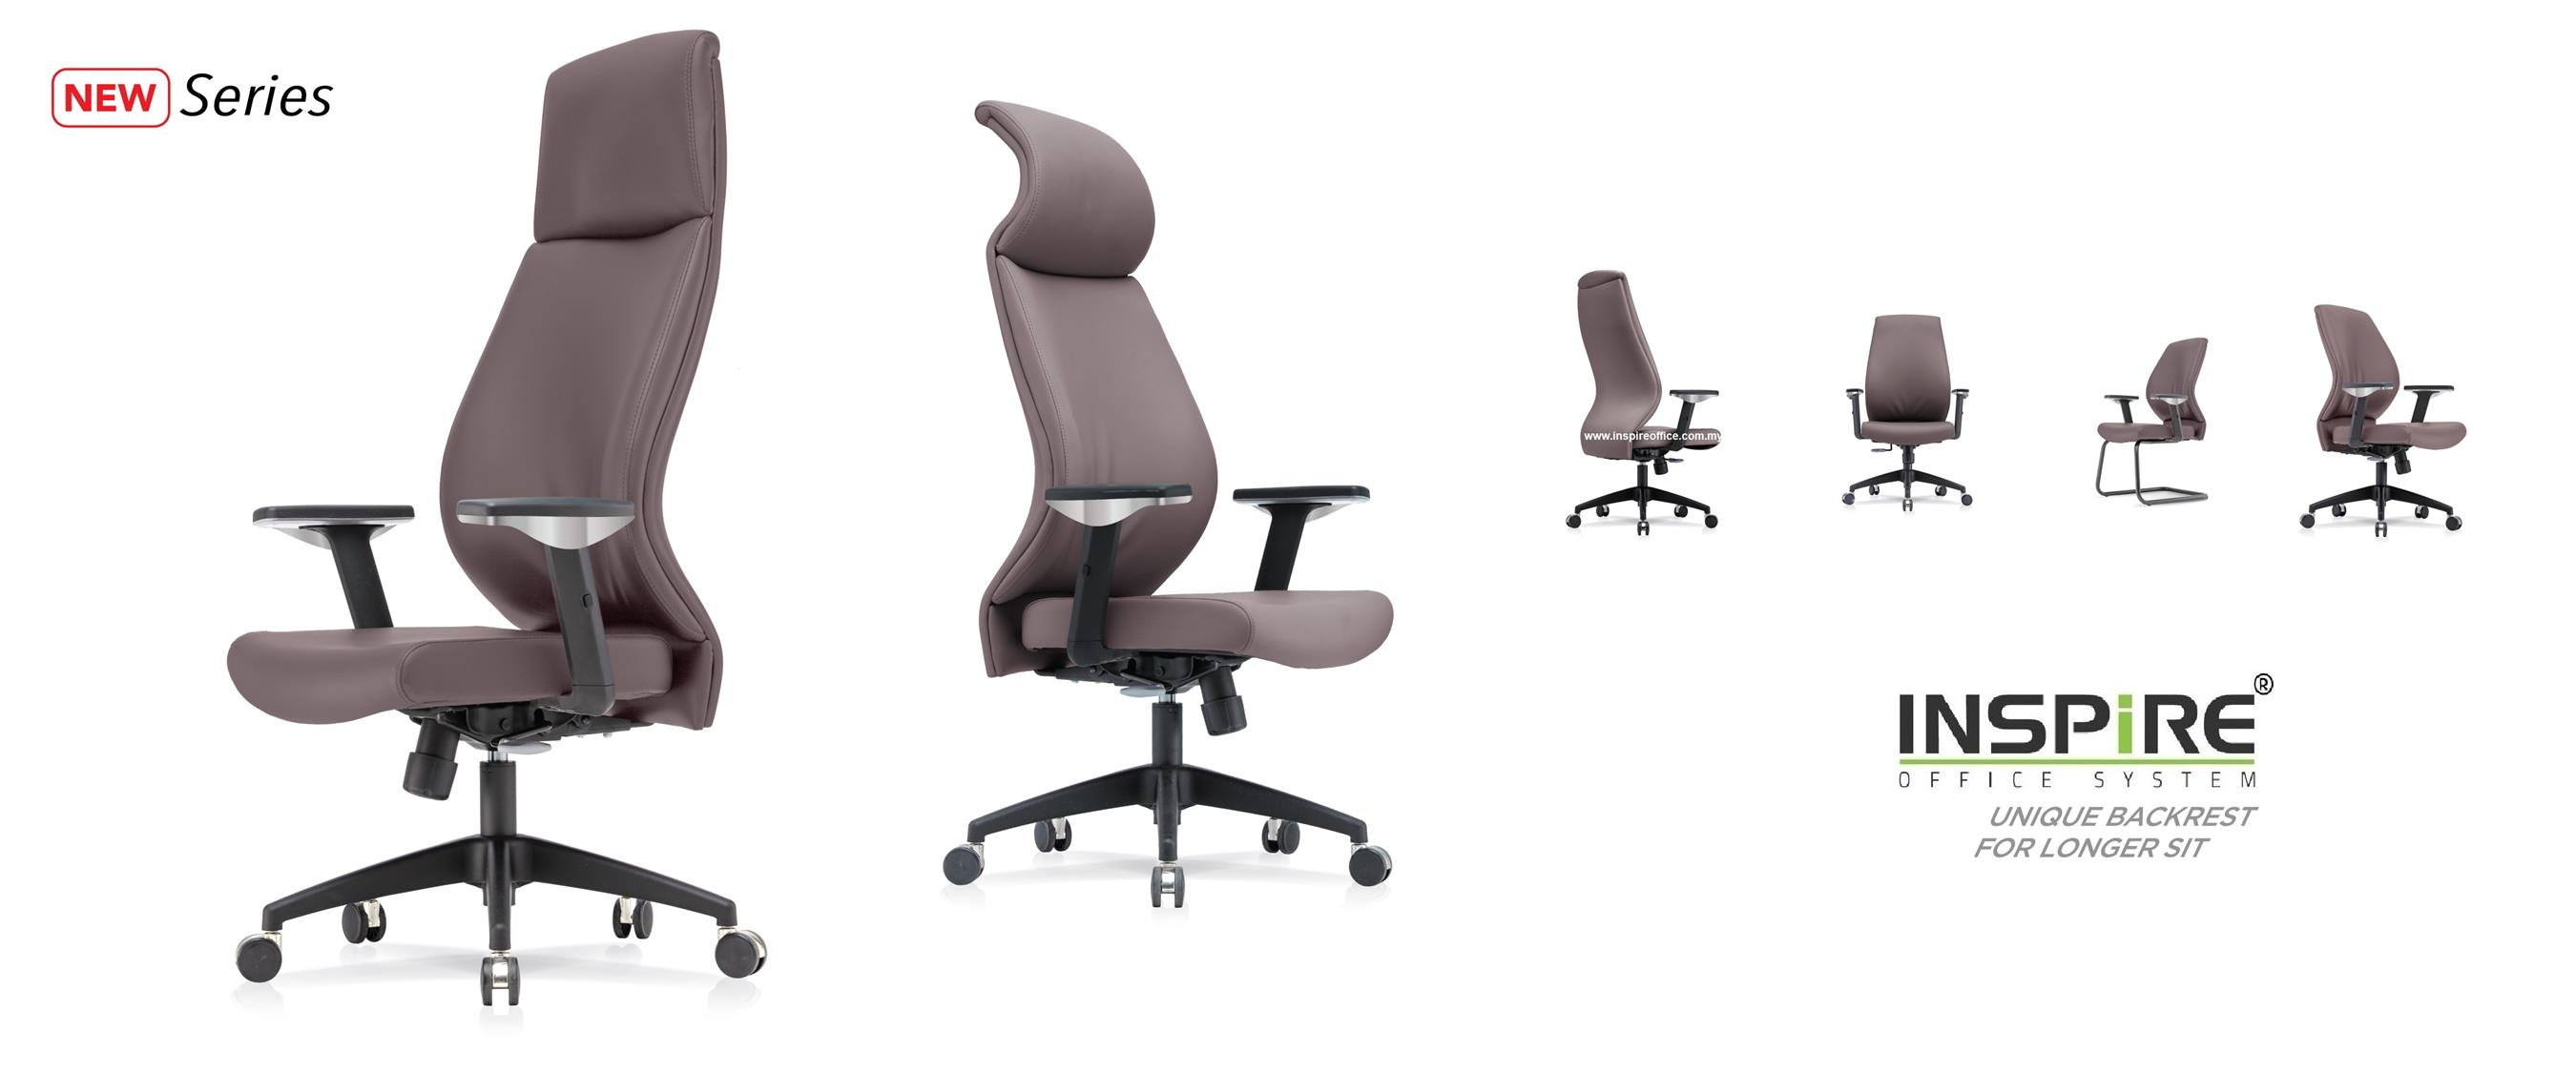 CELOSIA INS-3EHB High Back Extra PU/Fabric Office Chair